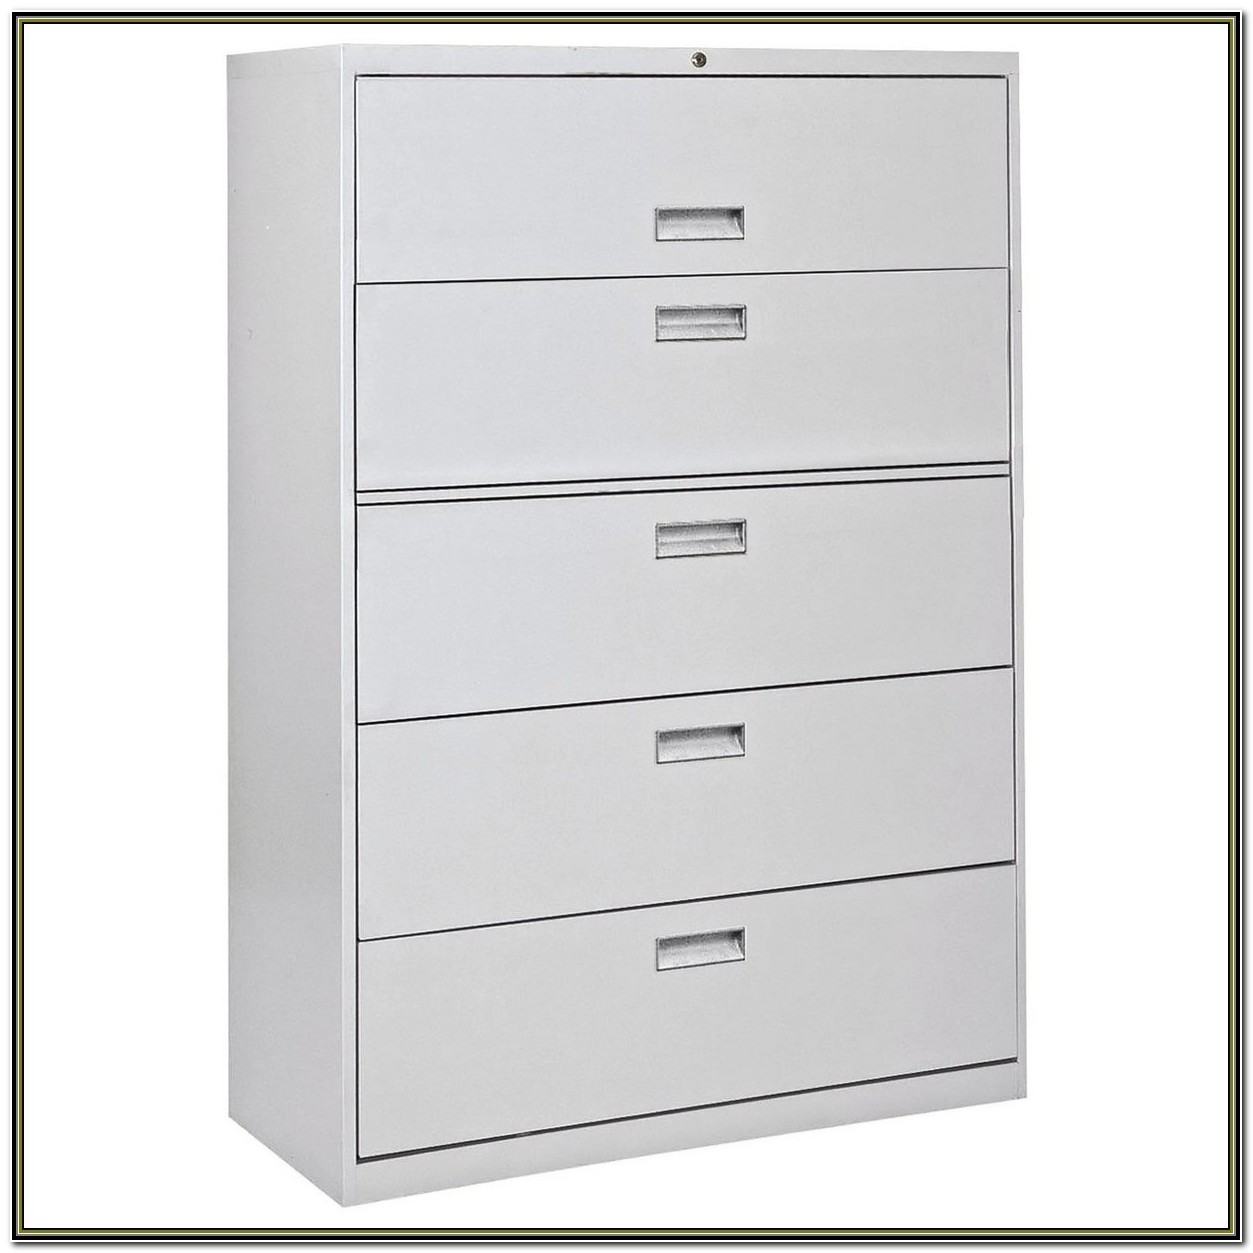 Hon 4 Drawer Lateral File Cabinet Weight